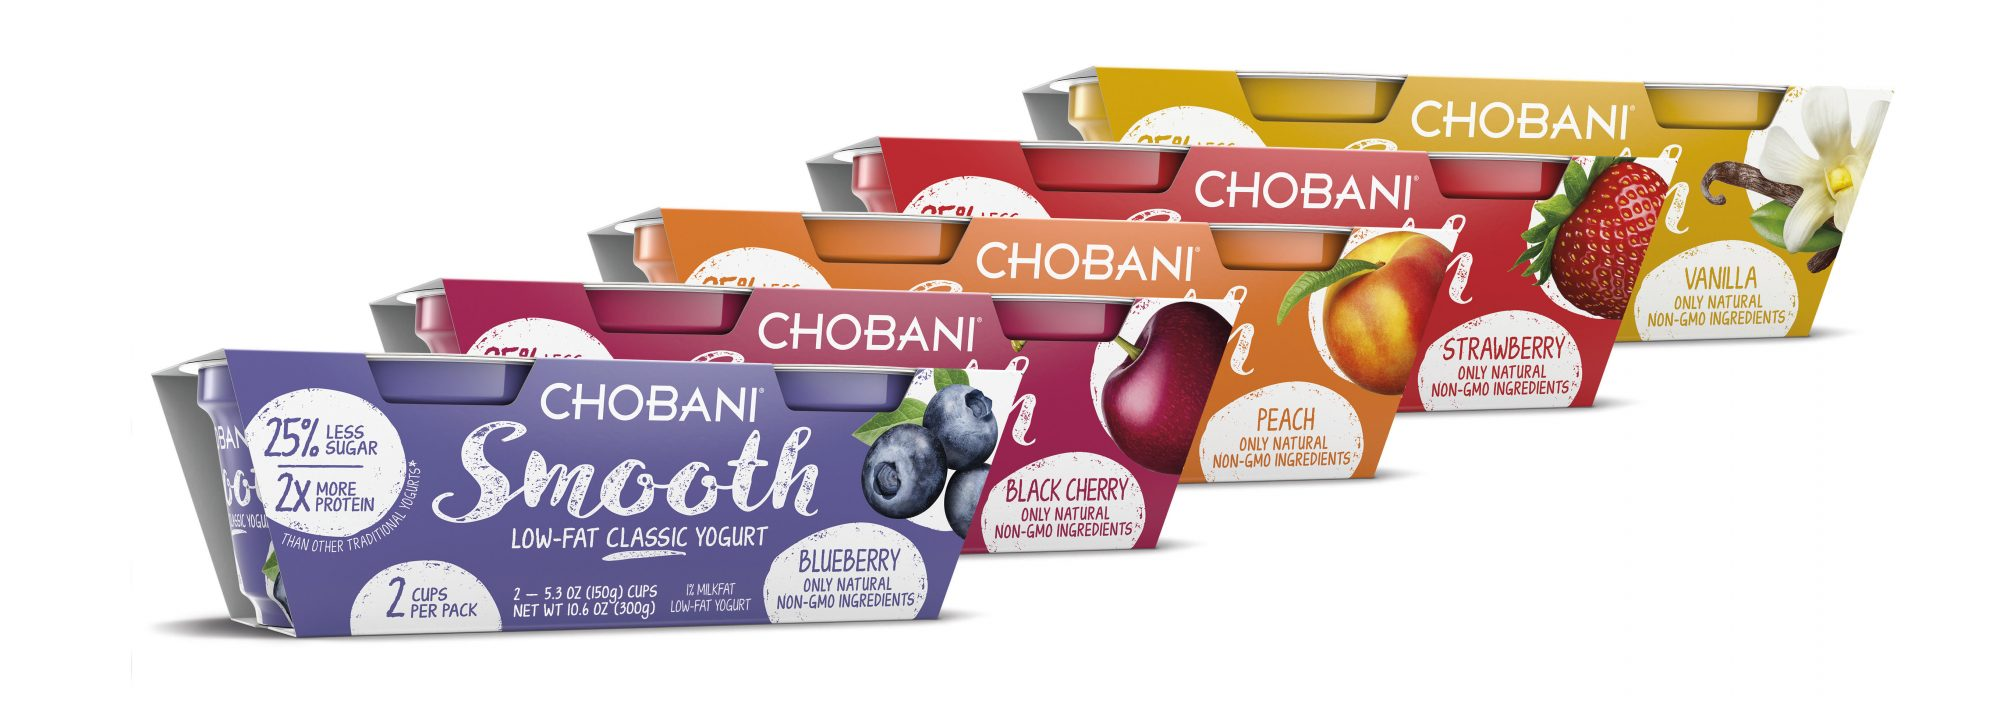 Greek Yogurt Maker Chobani Is Going Traditional For The First Time